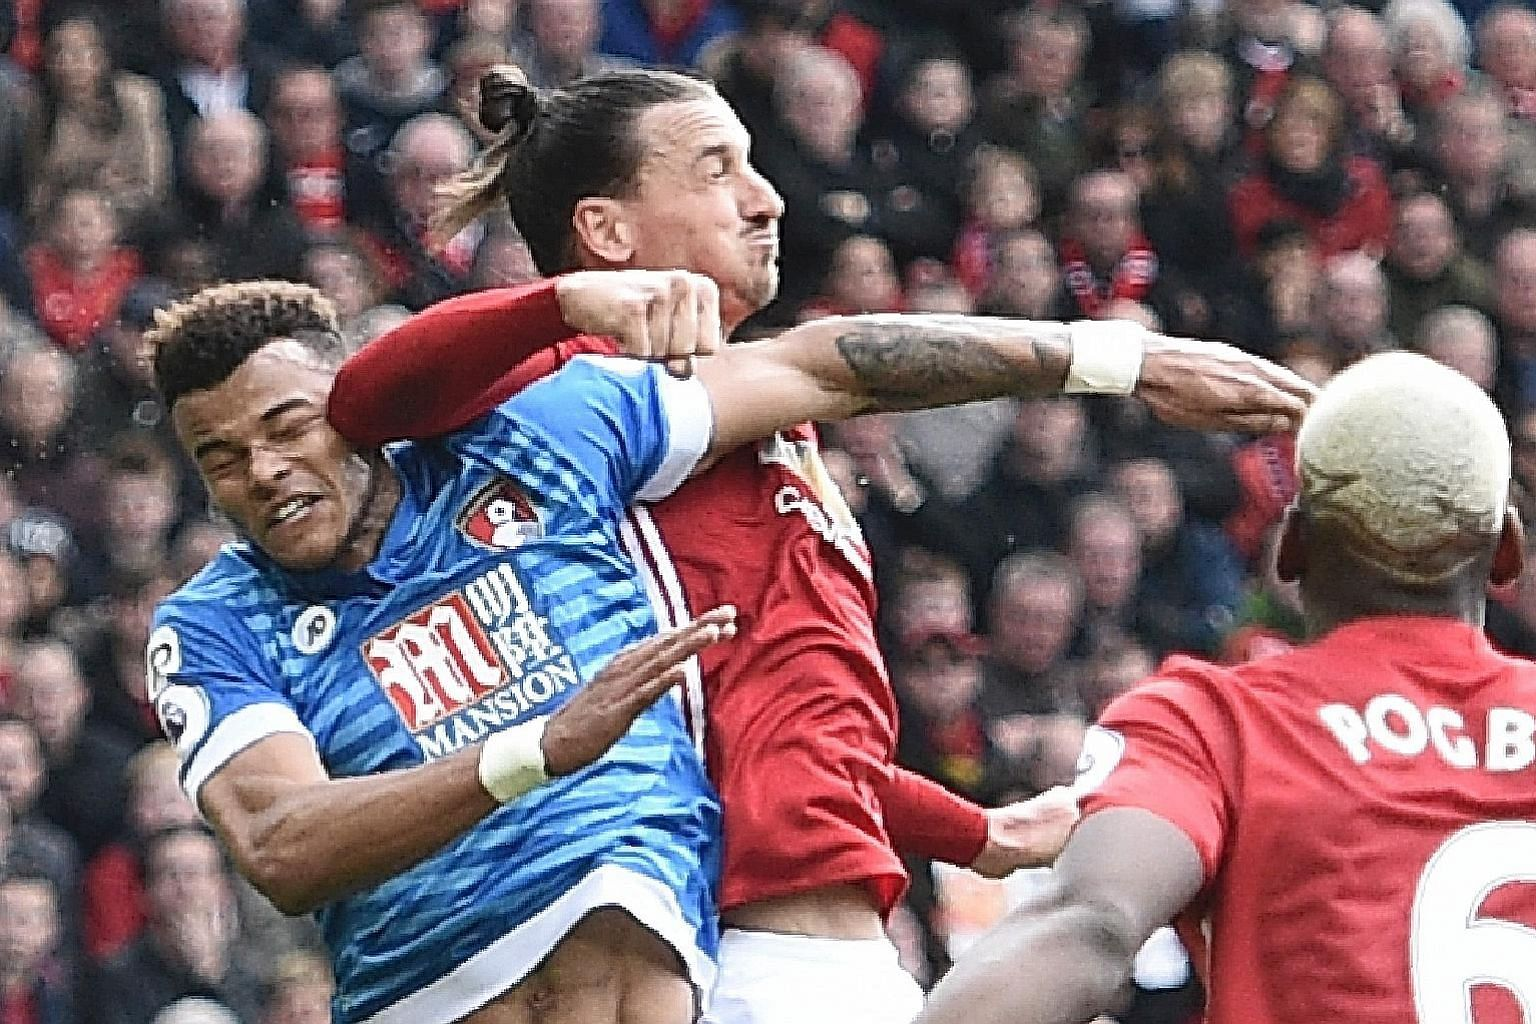 The contentious moment of the match, as Man United striker Zlatan Ibrahimovic (left) seemingly lands an elbow on the head of Bournemouth defender Tyrone Mings during their 1-1 Premier League draw at Old Trafford yesterday.